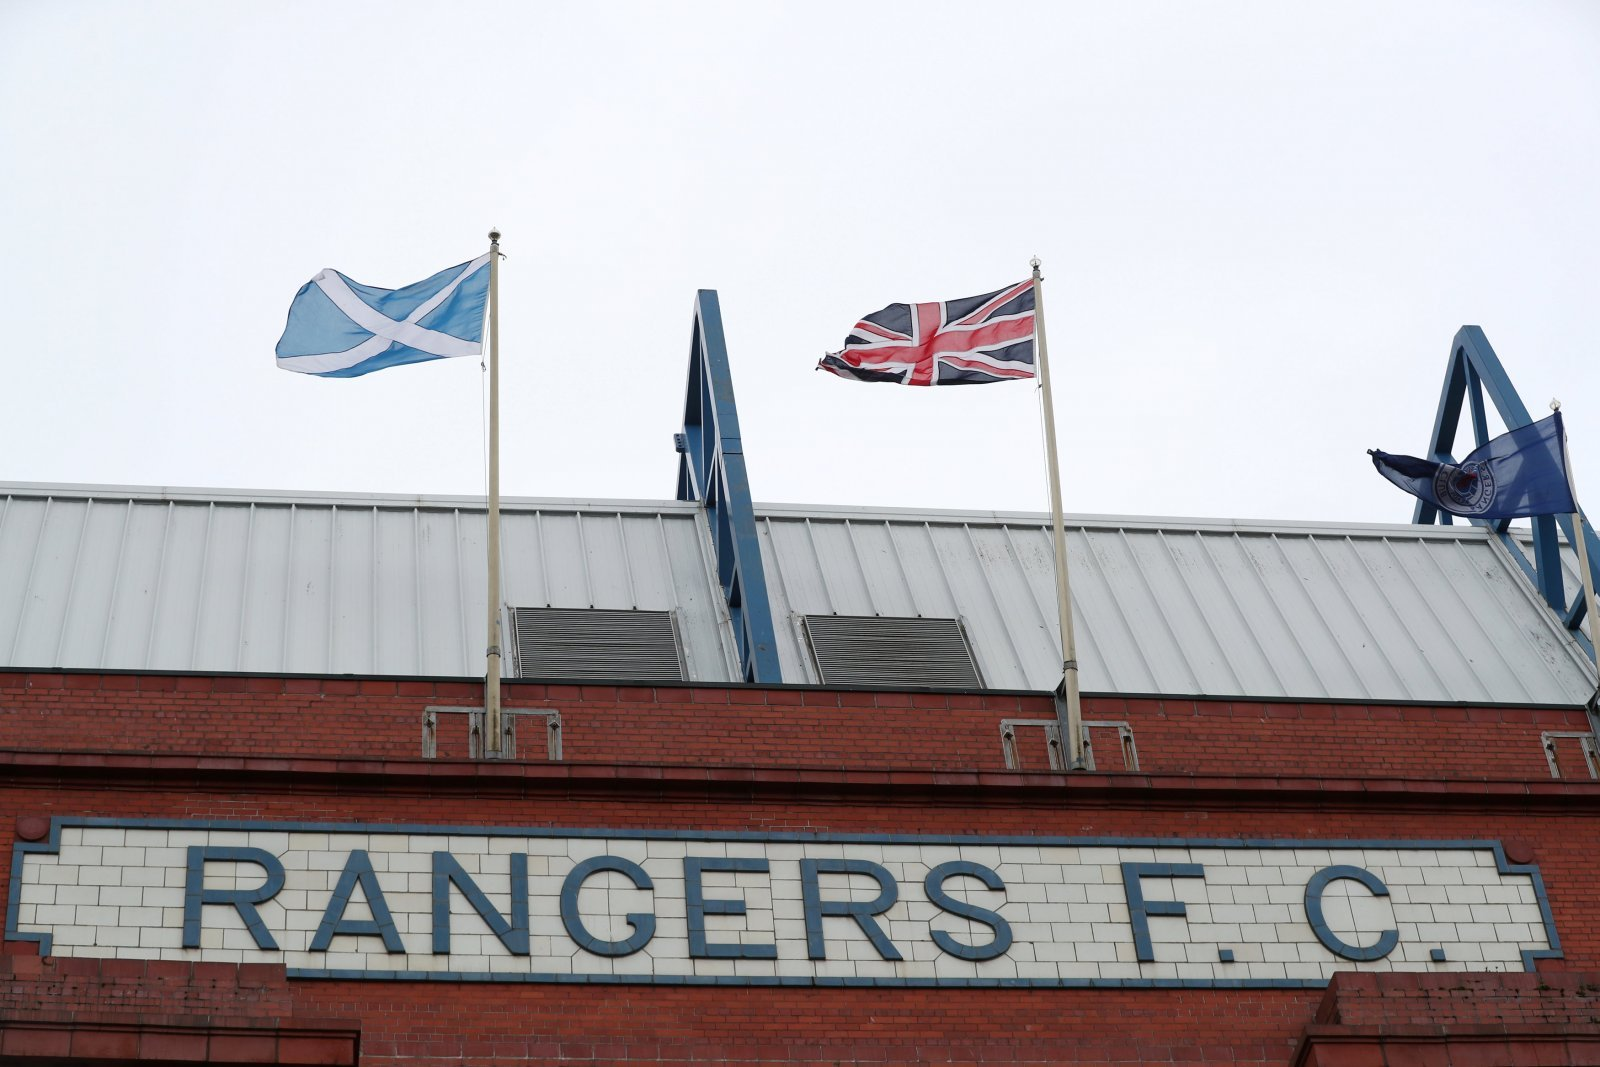 Rangers fans buzzing over Cup semi-final ticket news